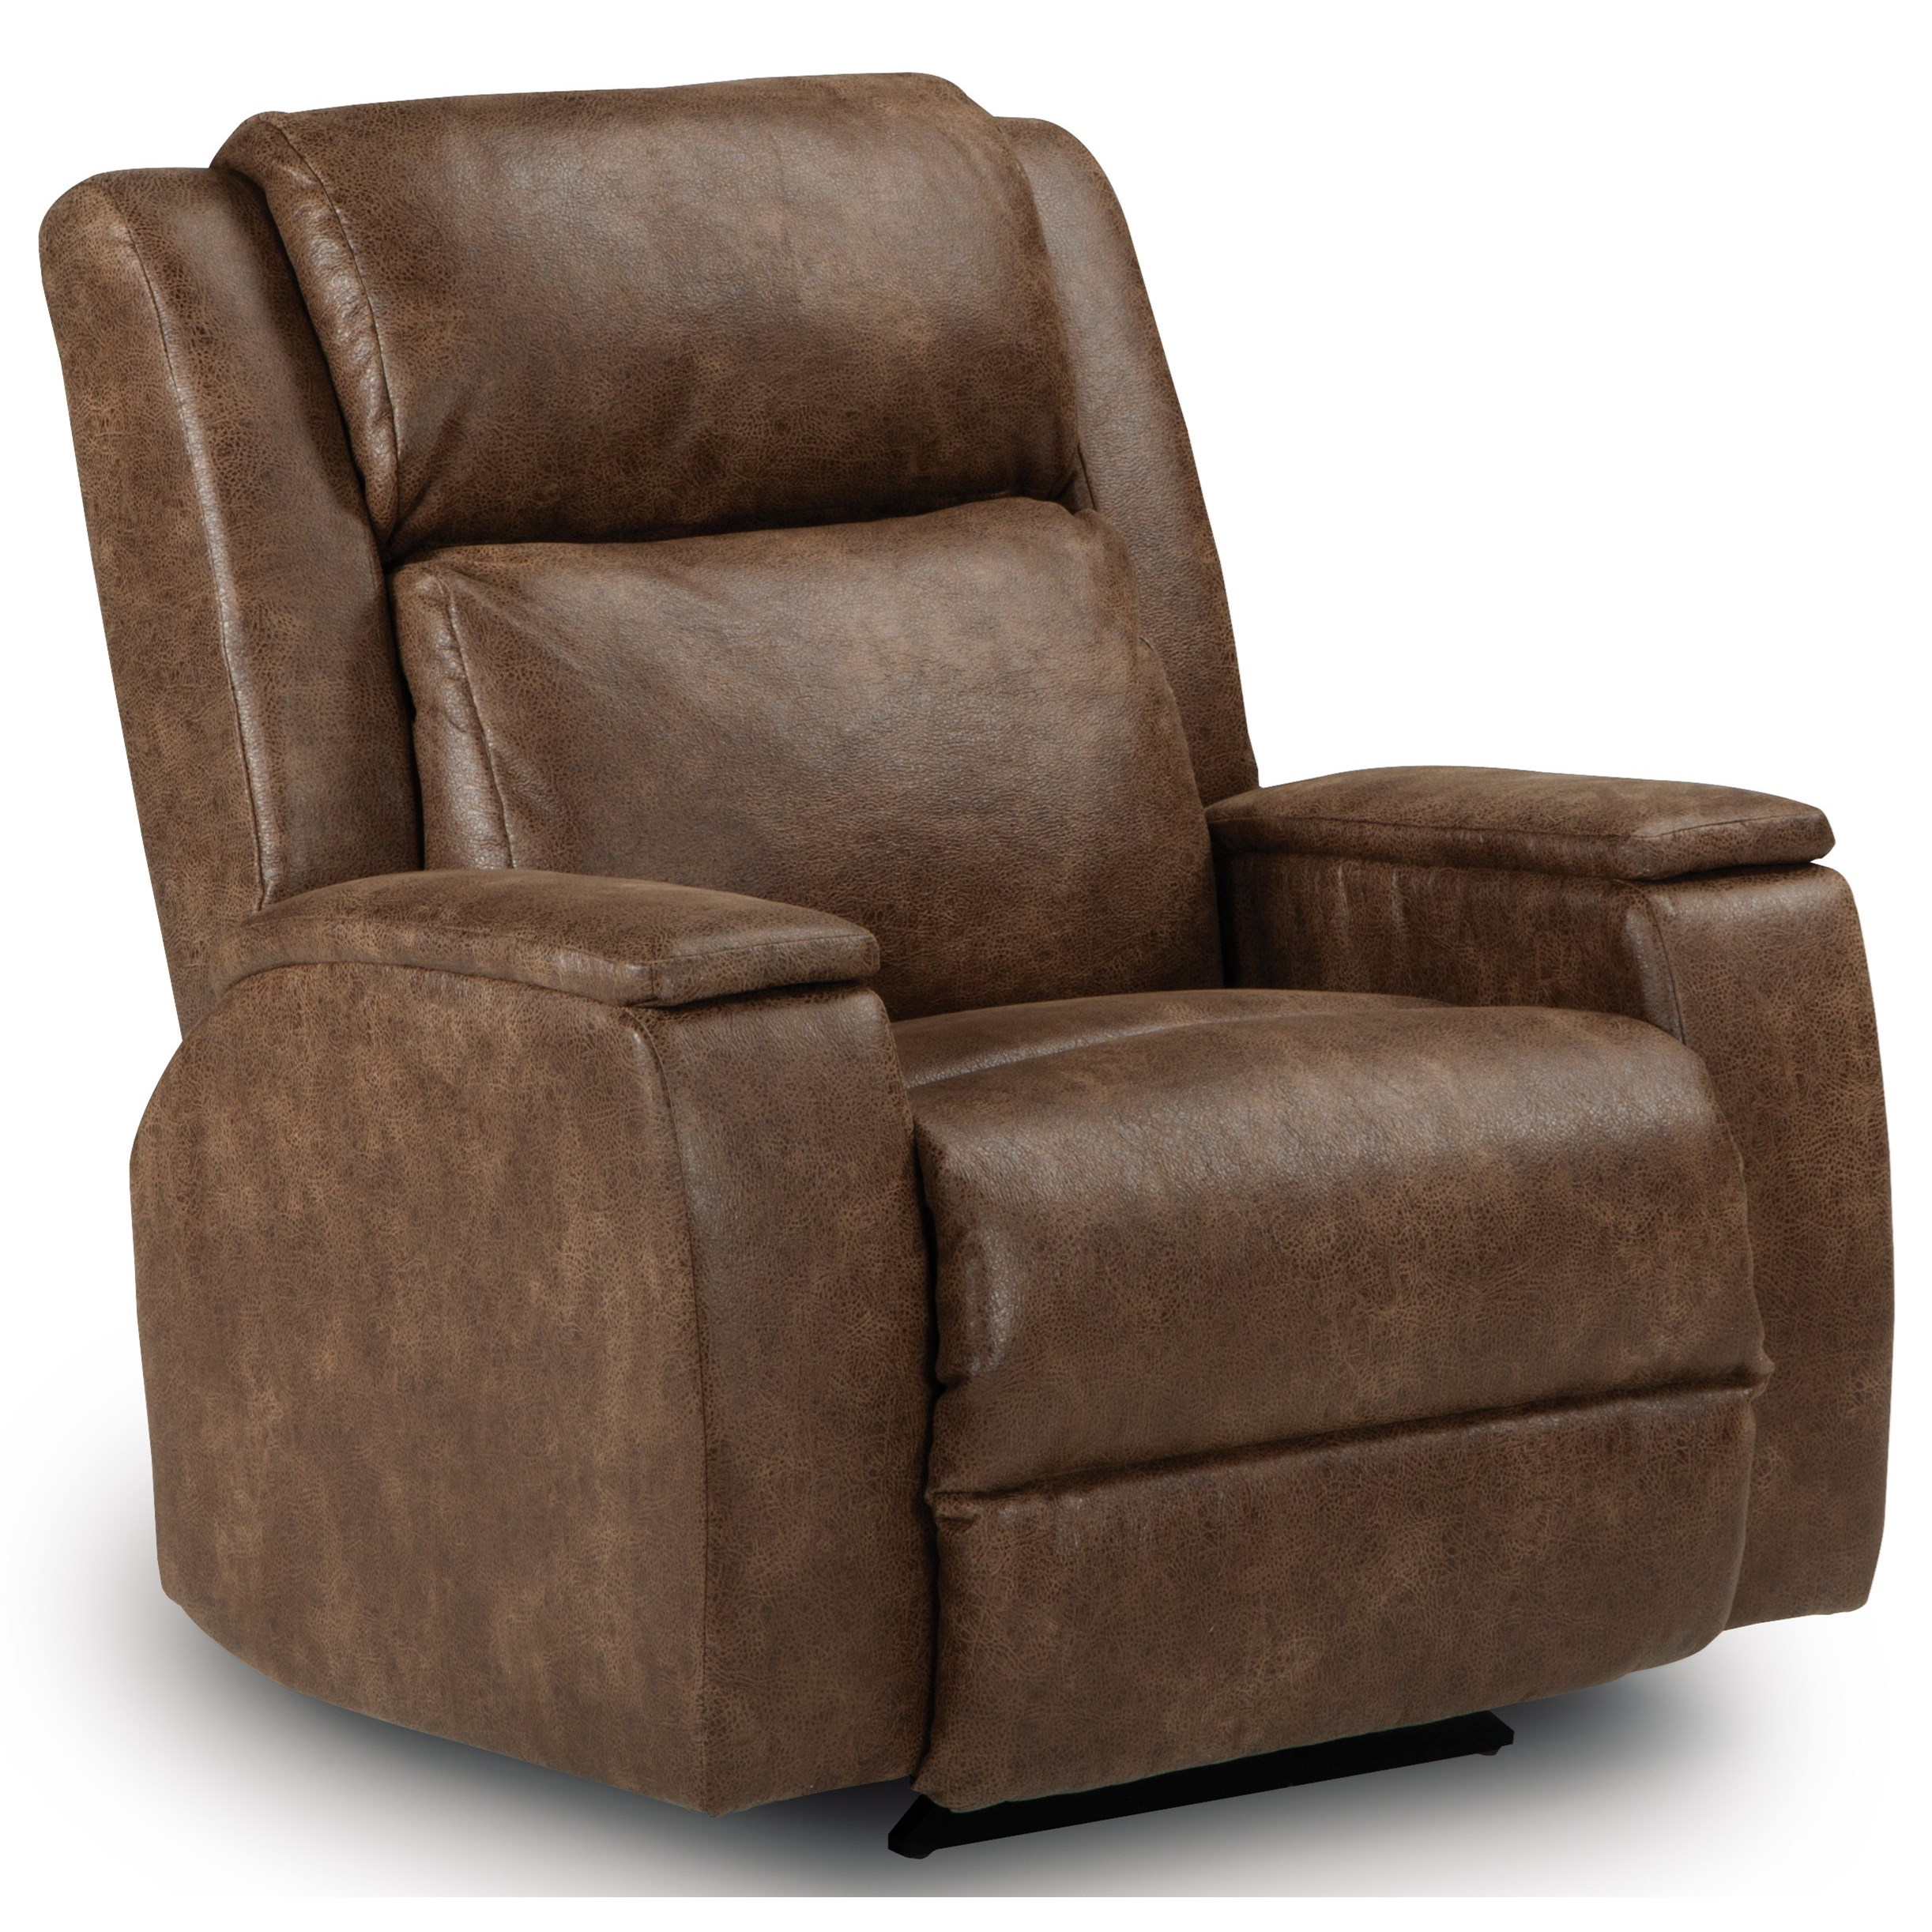 Colton Power Lift Recliner with Power Adjustable Headrest by Best